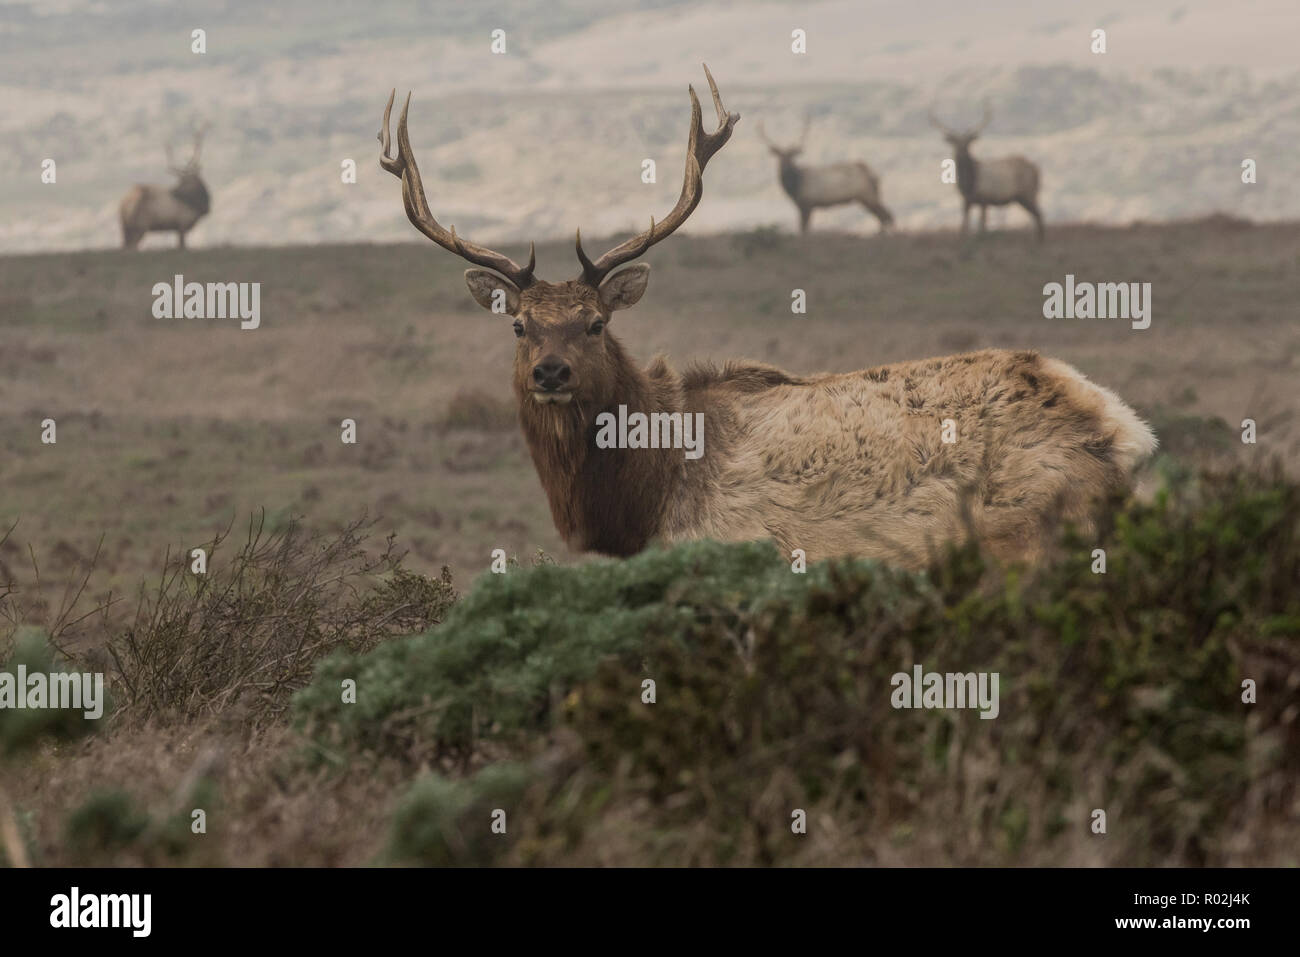 Tule elk (Cervus canadensis nannodes) a subspecies endemic to California once nearly went extinct, today they can easily be seen at Pt. Reyes, CA. Stock Photo